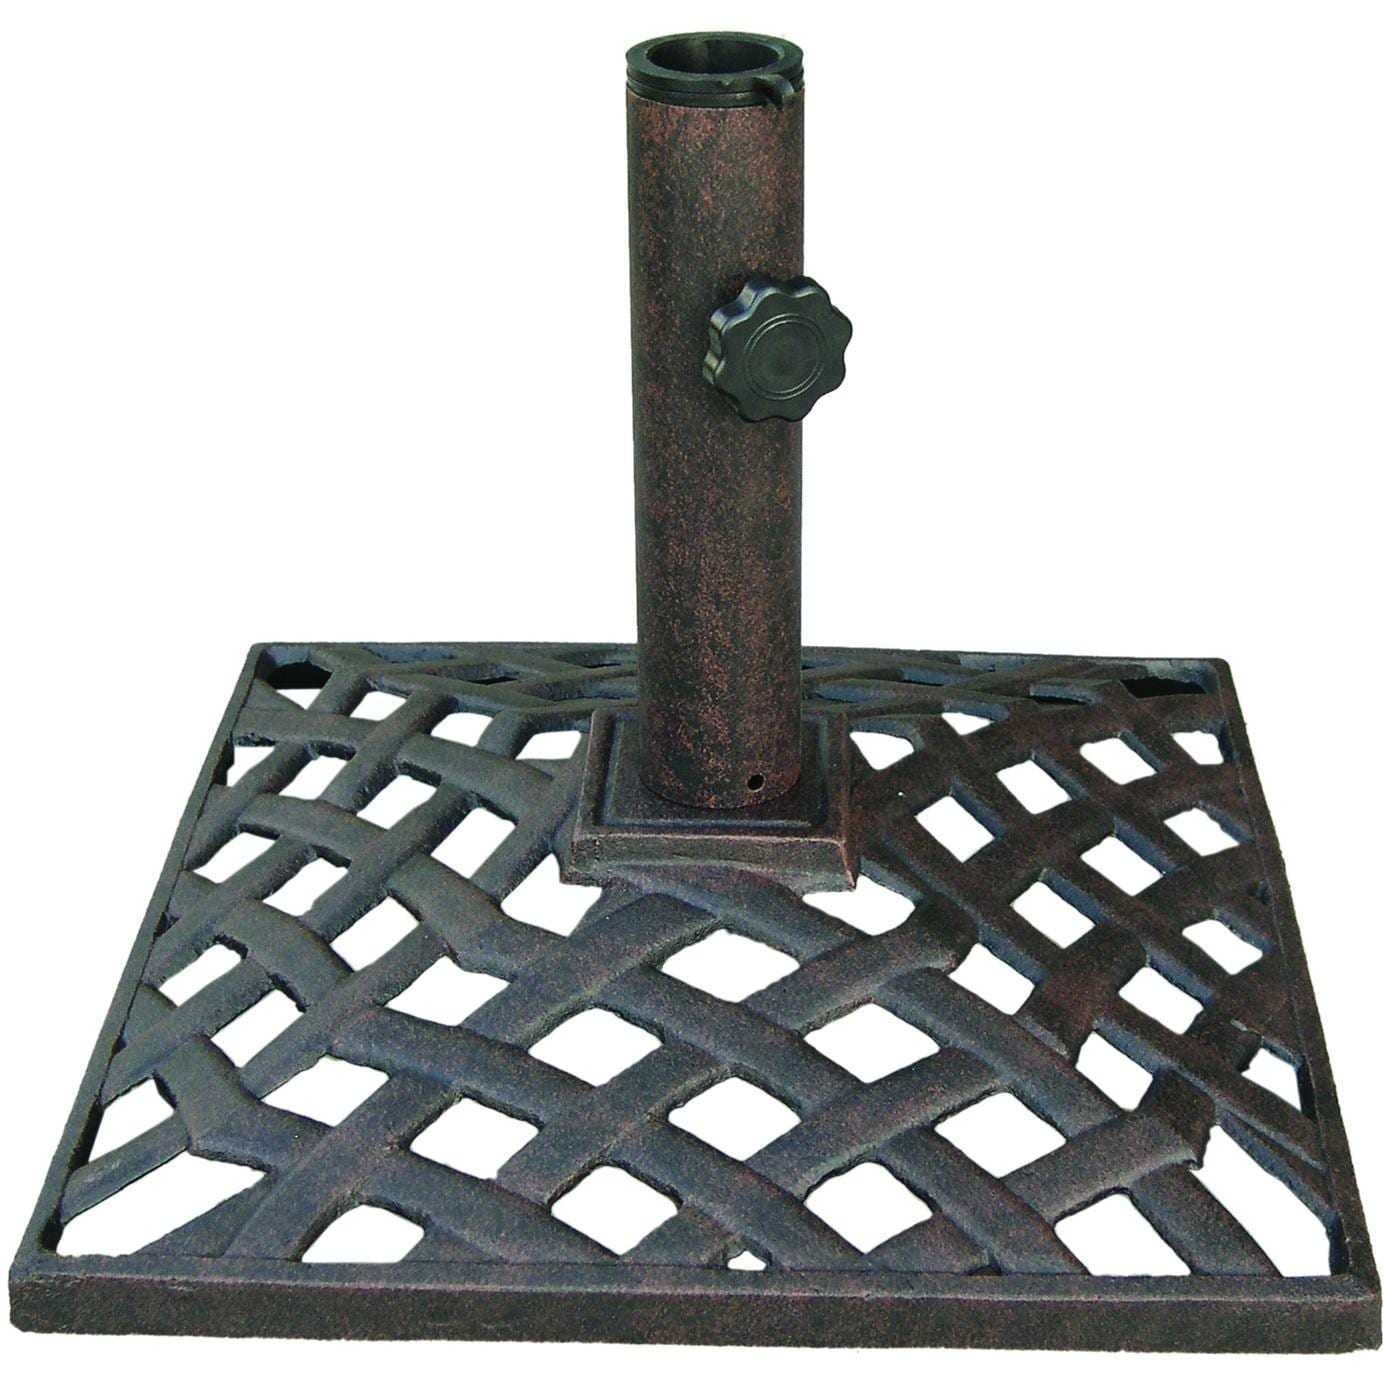 Darlee Basket Weave Cast Iron Patio Umbrella Base - Darlee Basket Weave Cast Iron Patio Umbrella Base The Outdoor Store